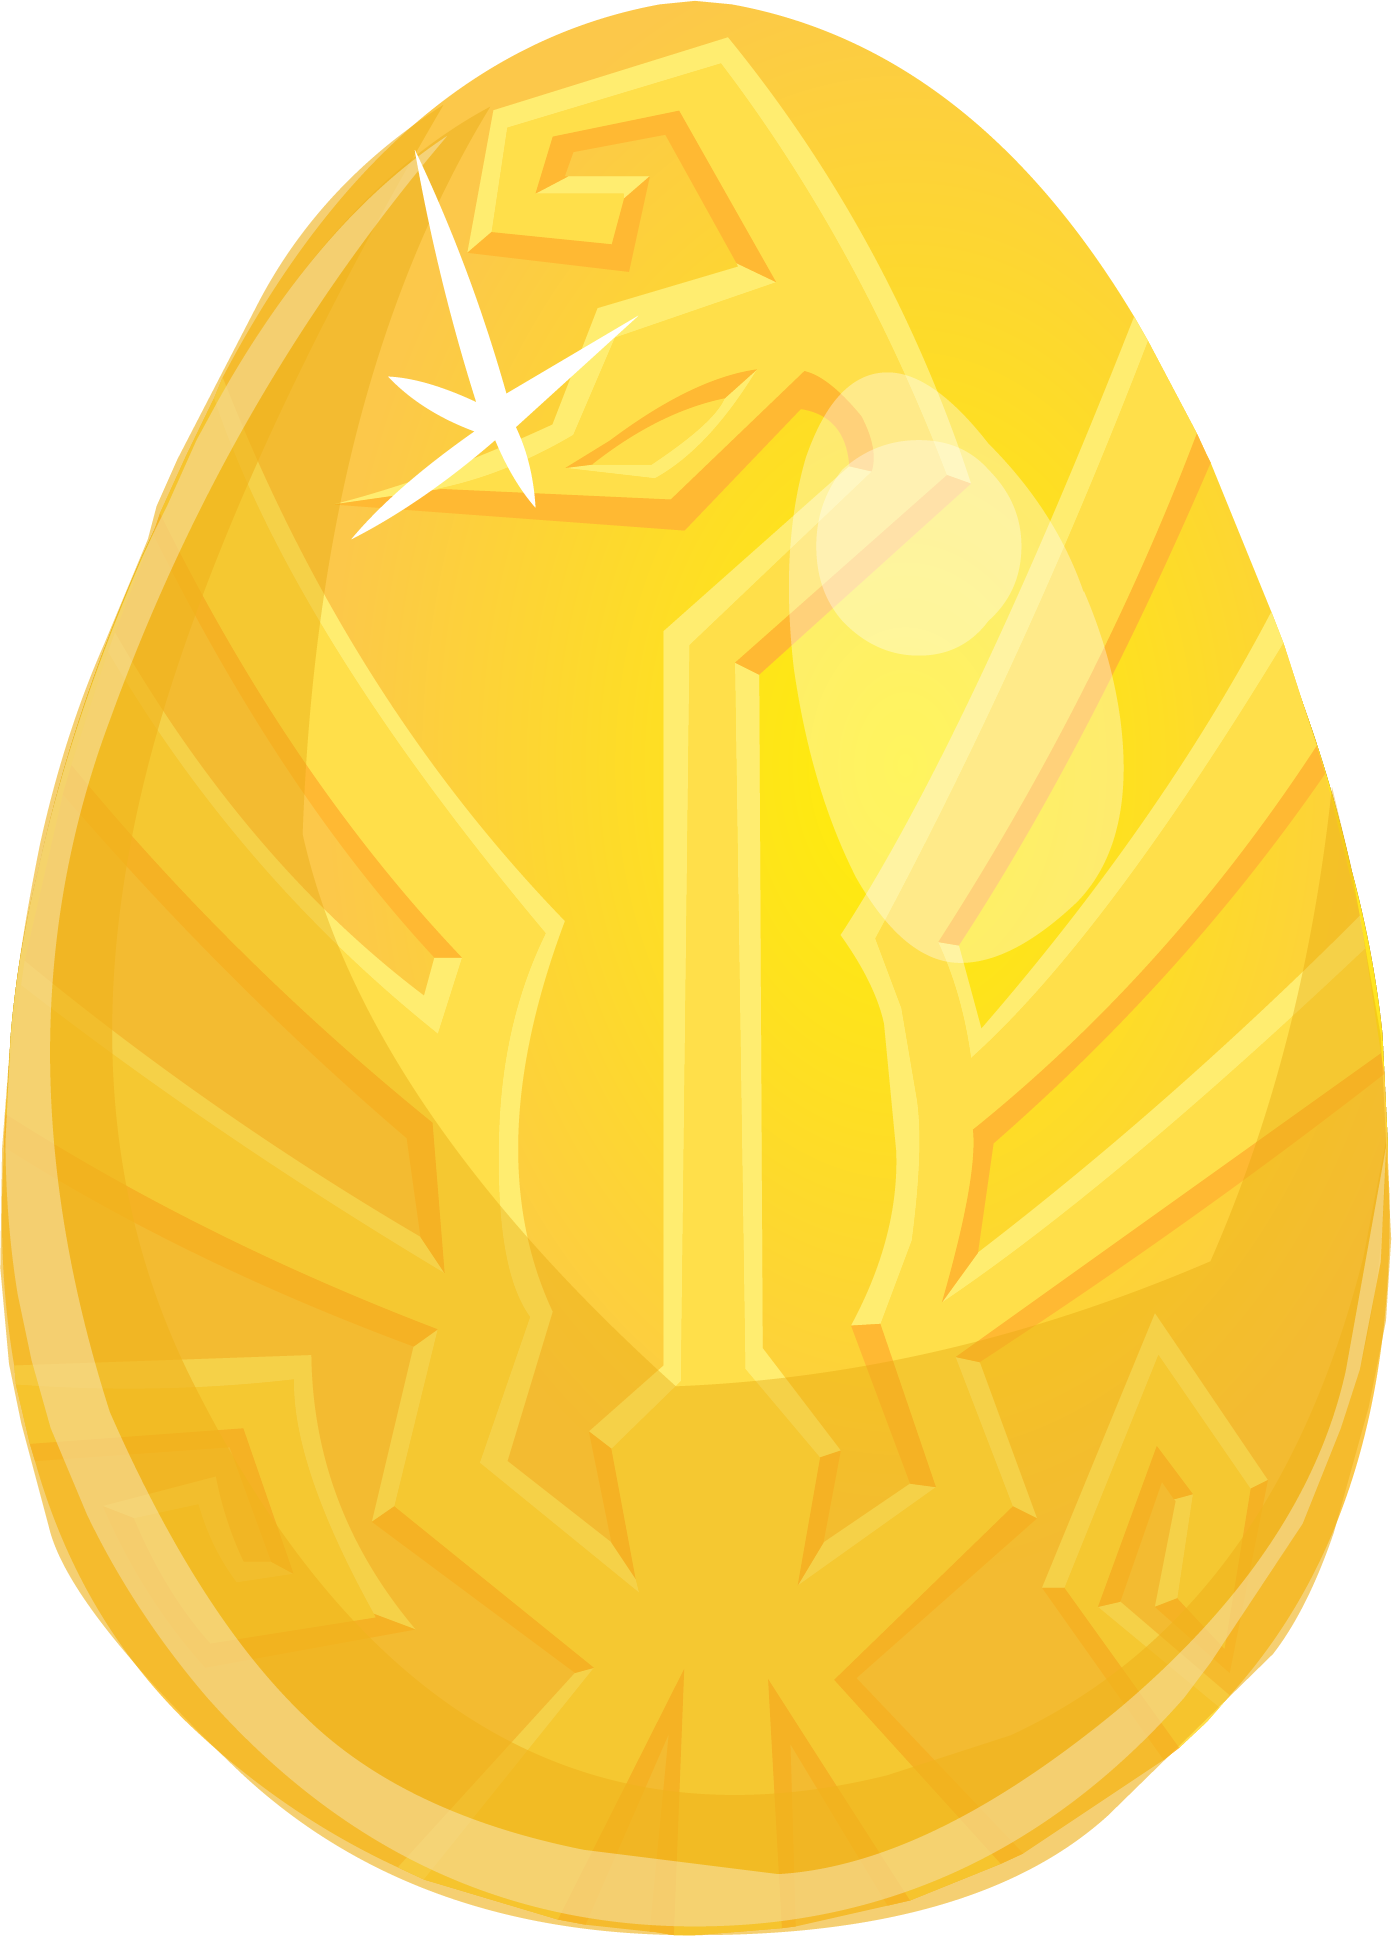 Golden Mira Egg